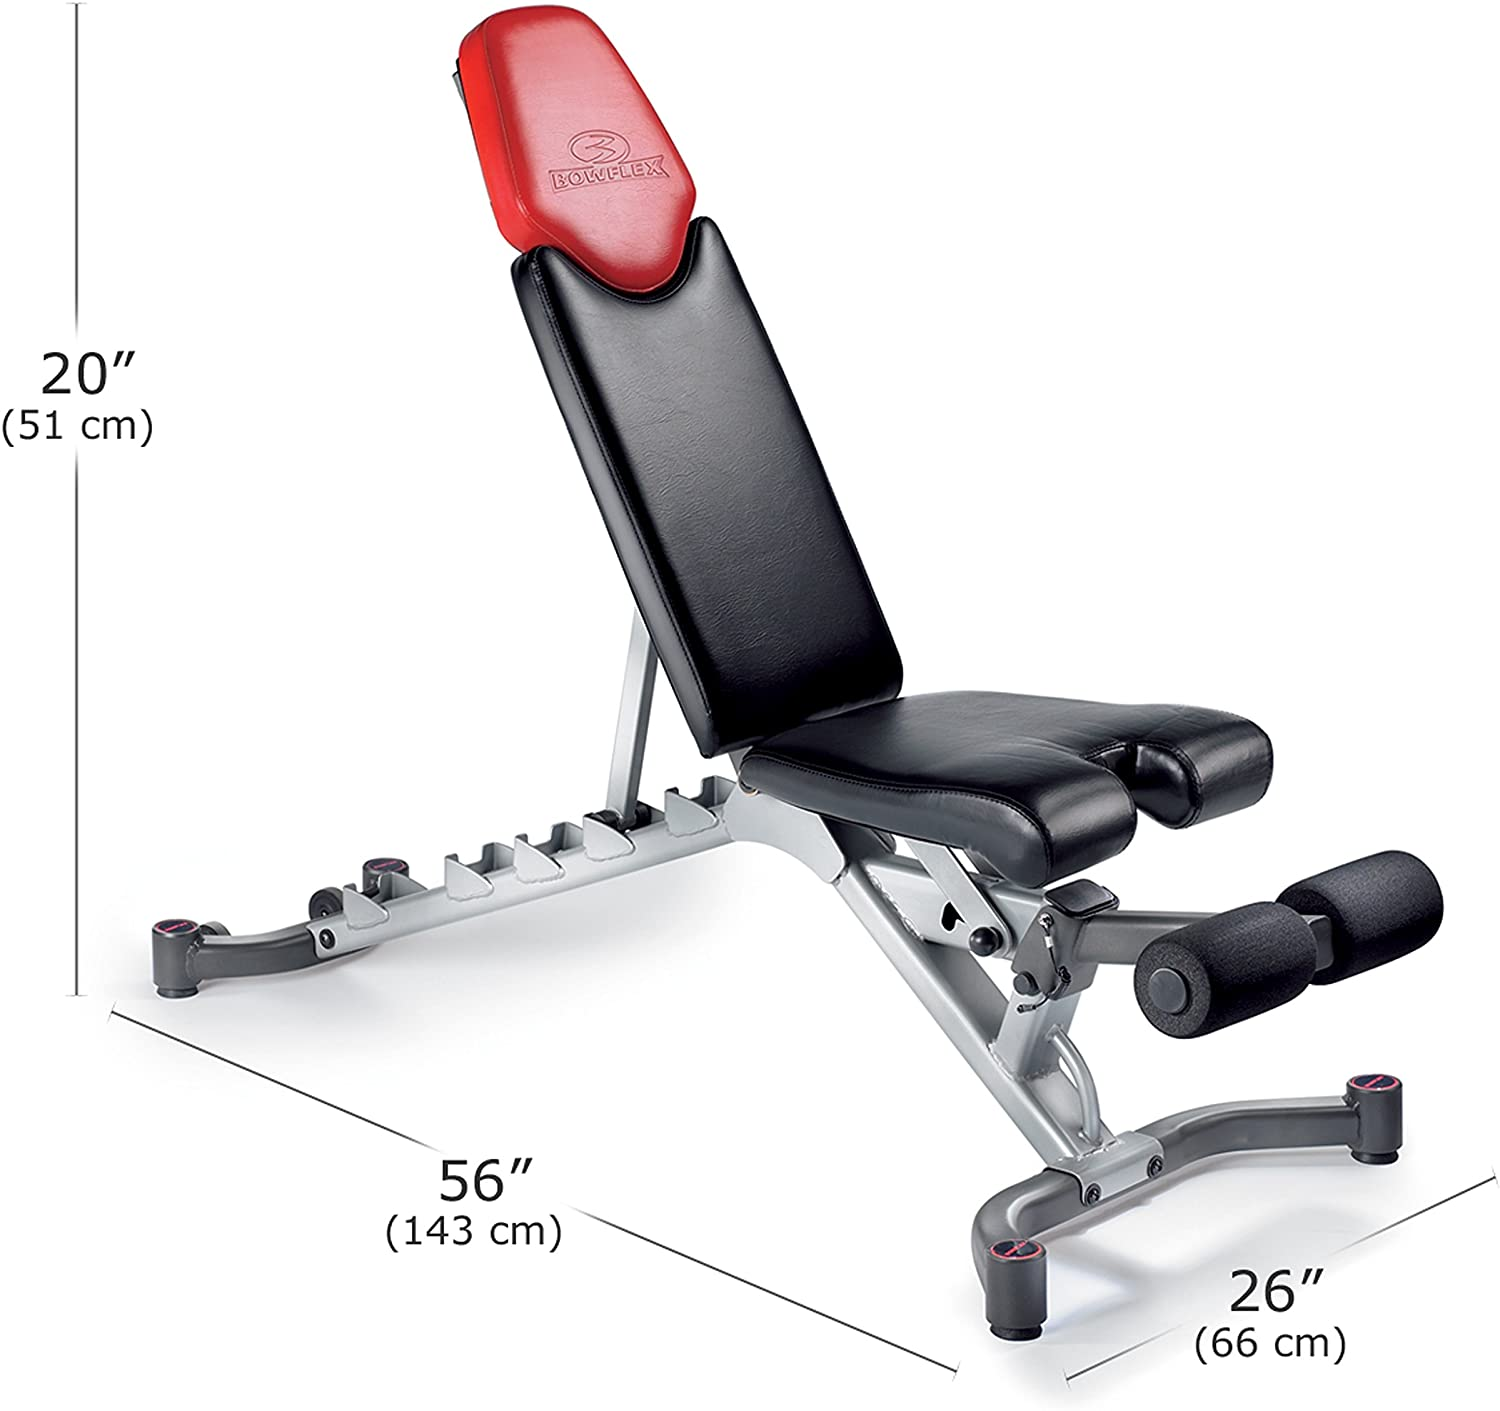 Bowflex SelectTech Adjustable Bench specs